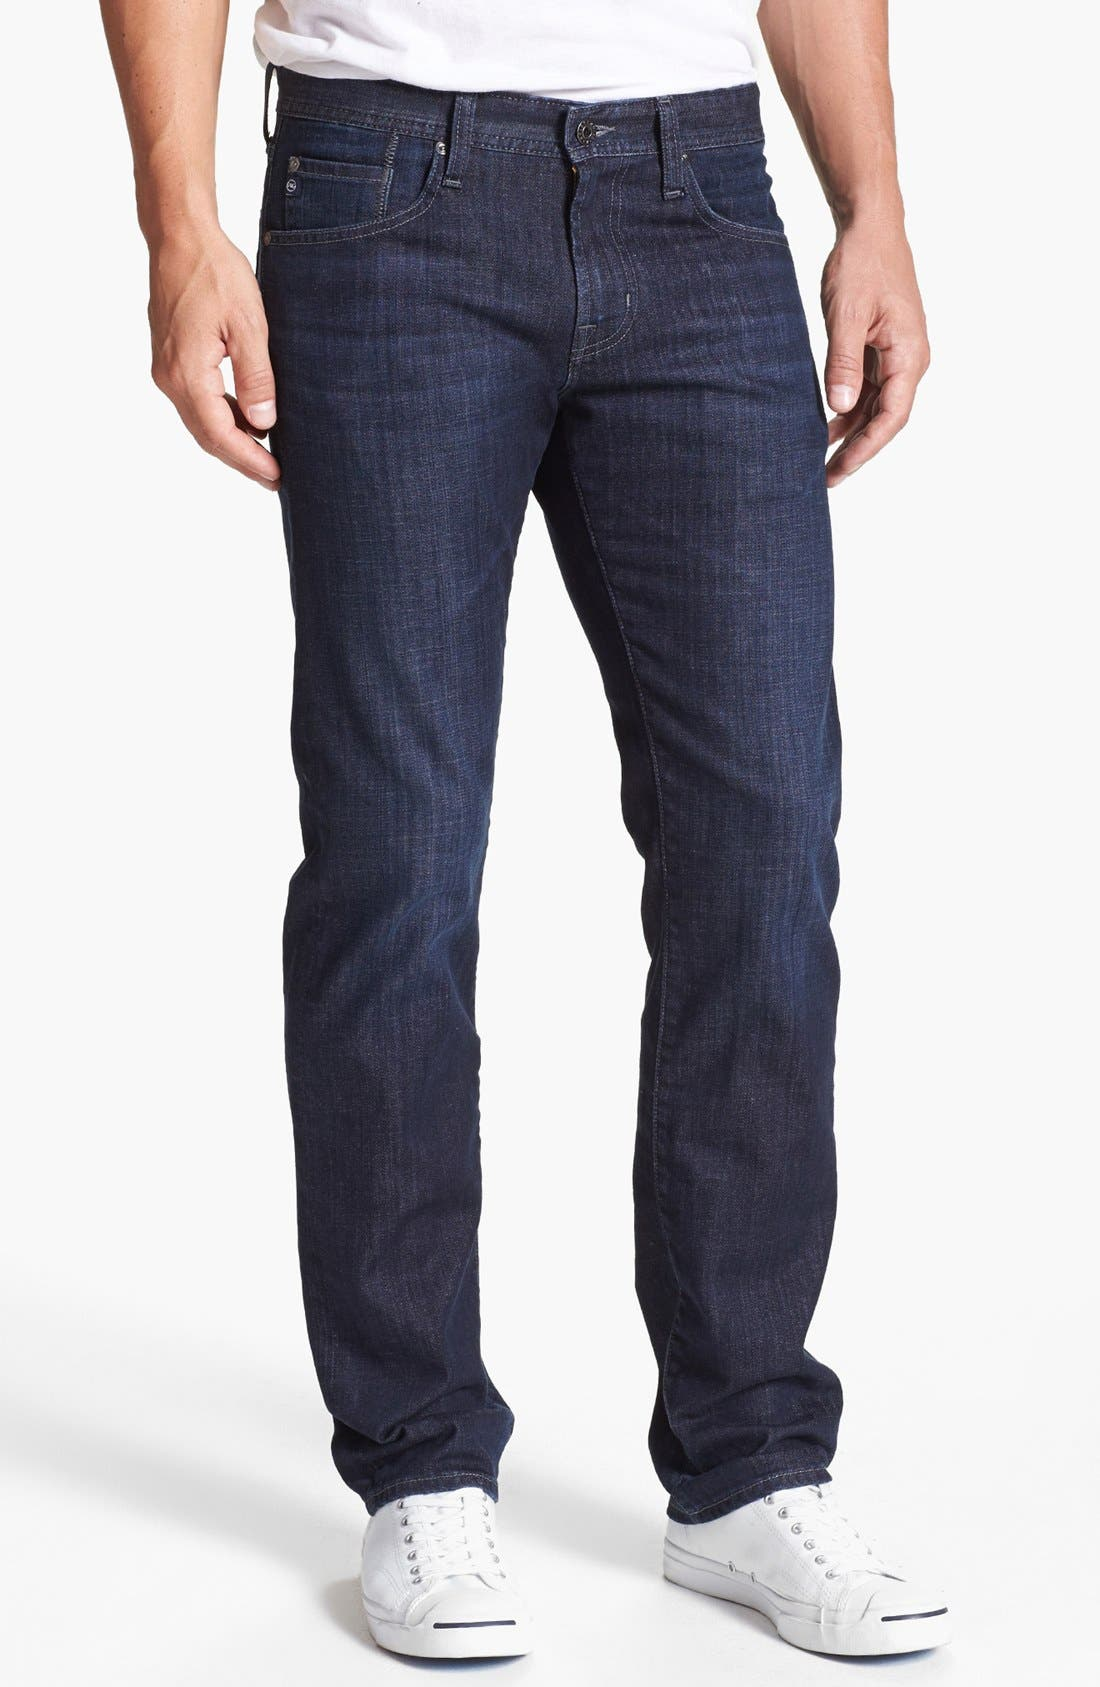 Alternate Image 1 Selected - AG 'Matchbox' Slim Fit Jeans (Bunker)